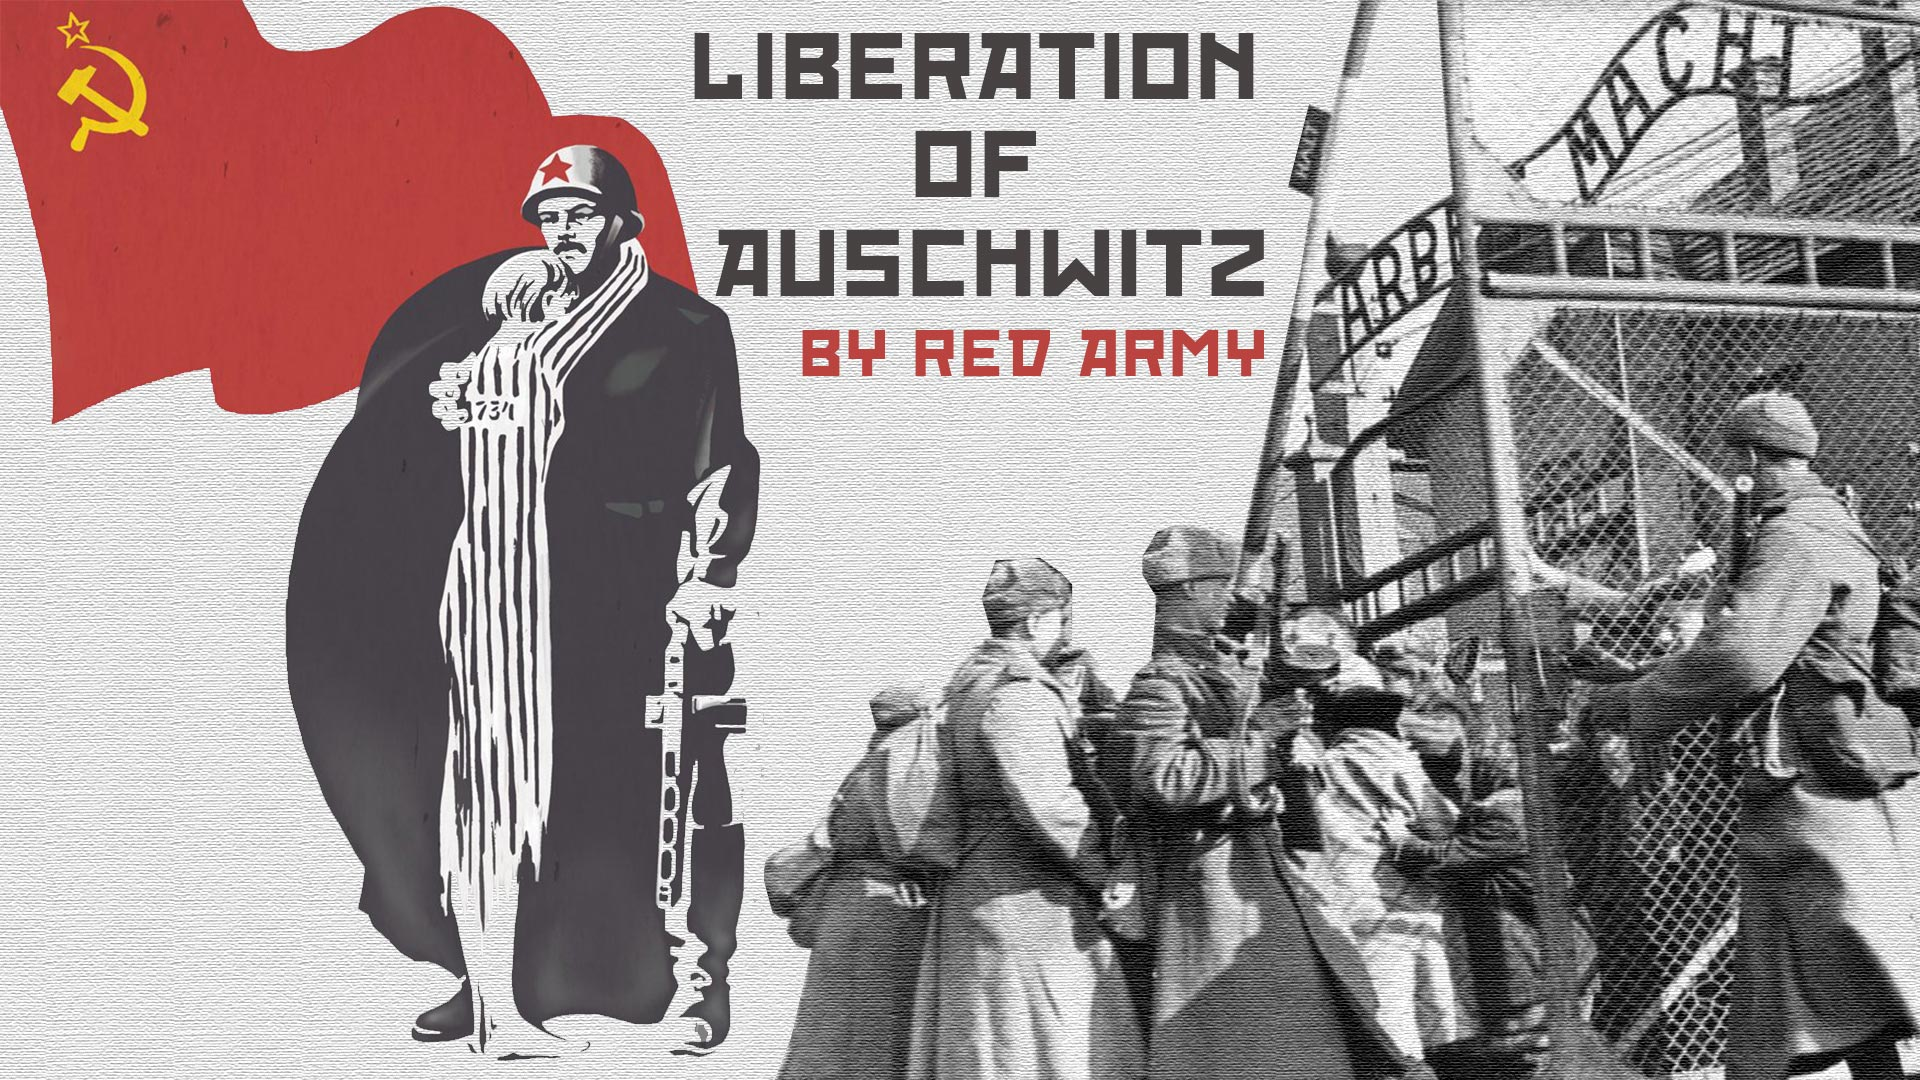 LIBERATION OF AUSCHWITZ by RED ARMY